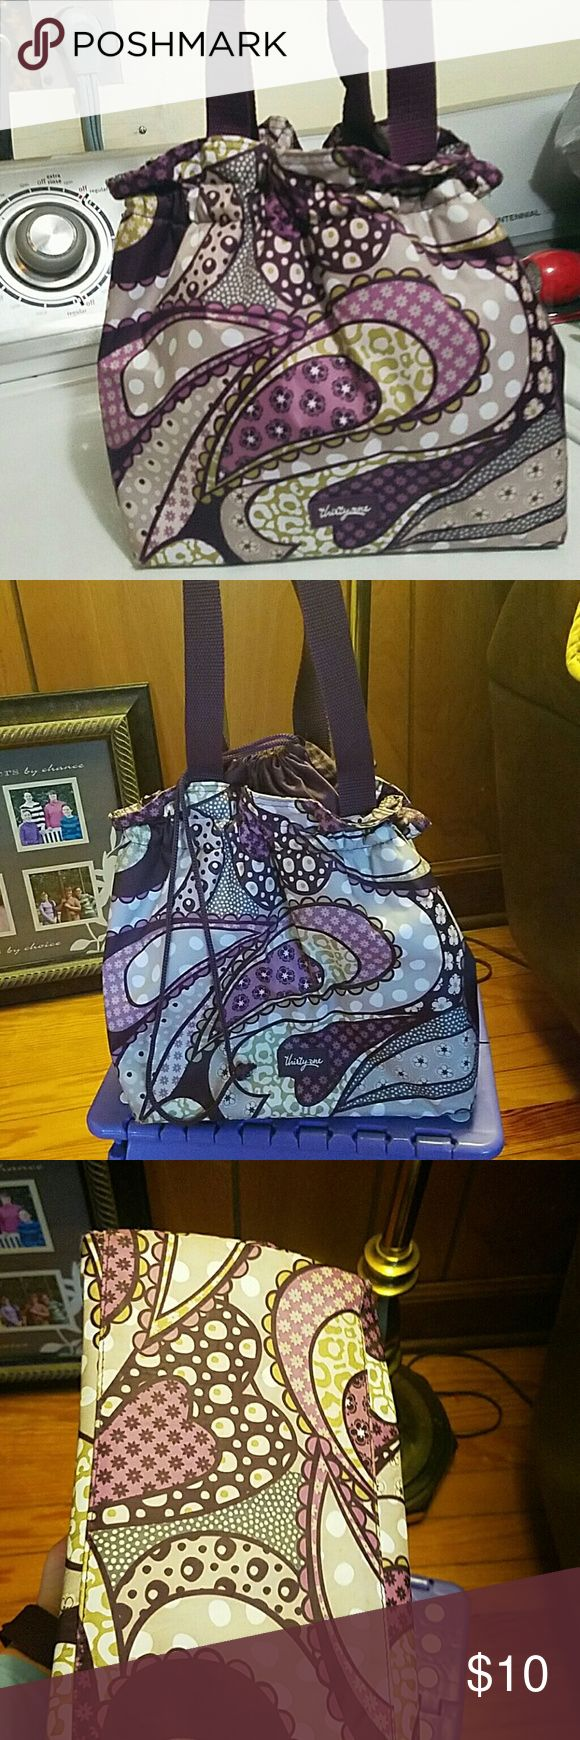 Insulated lunch tote Thirty-one insulated tote!! In good condition!! Thirty-one Bags Totes